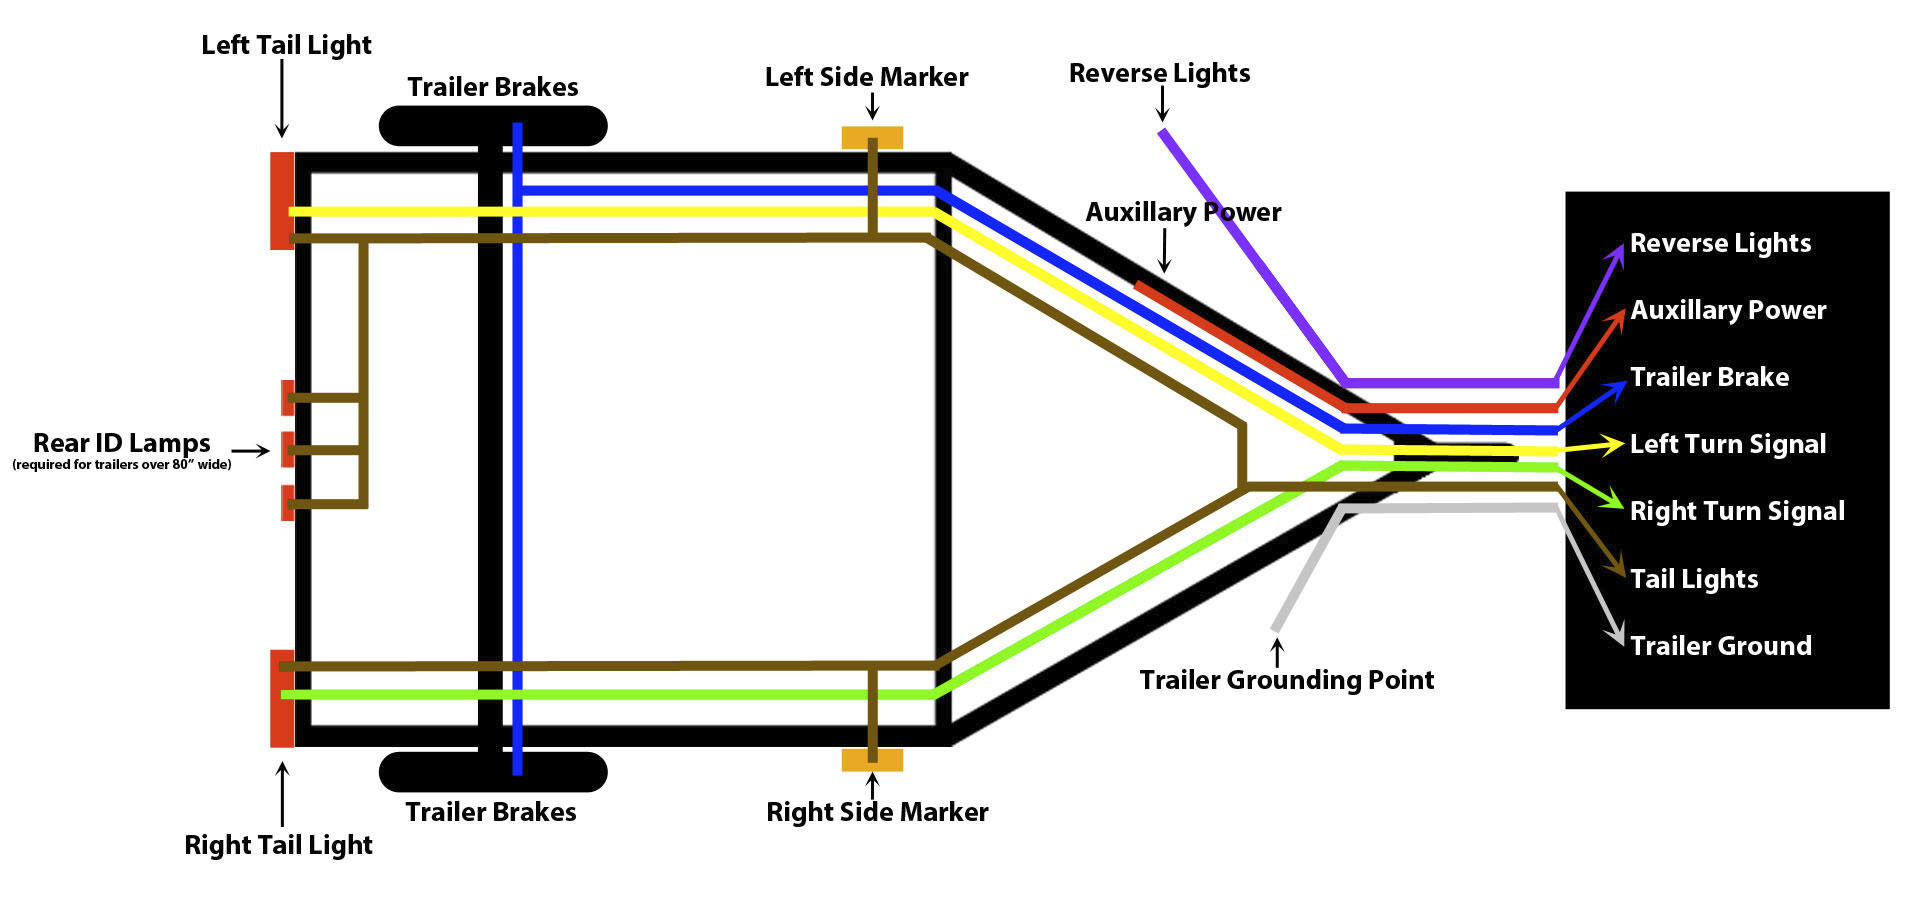 How To Wire Trailer Lights - Trailer Wiring Guide & Videos - 2017 Trailer Wiring Diagram